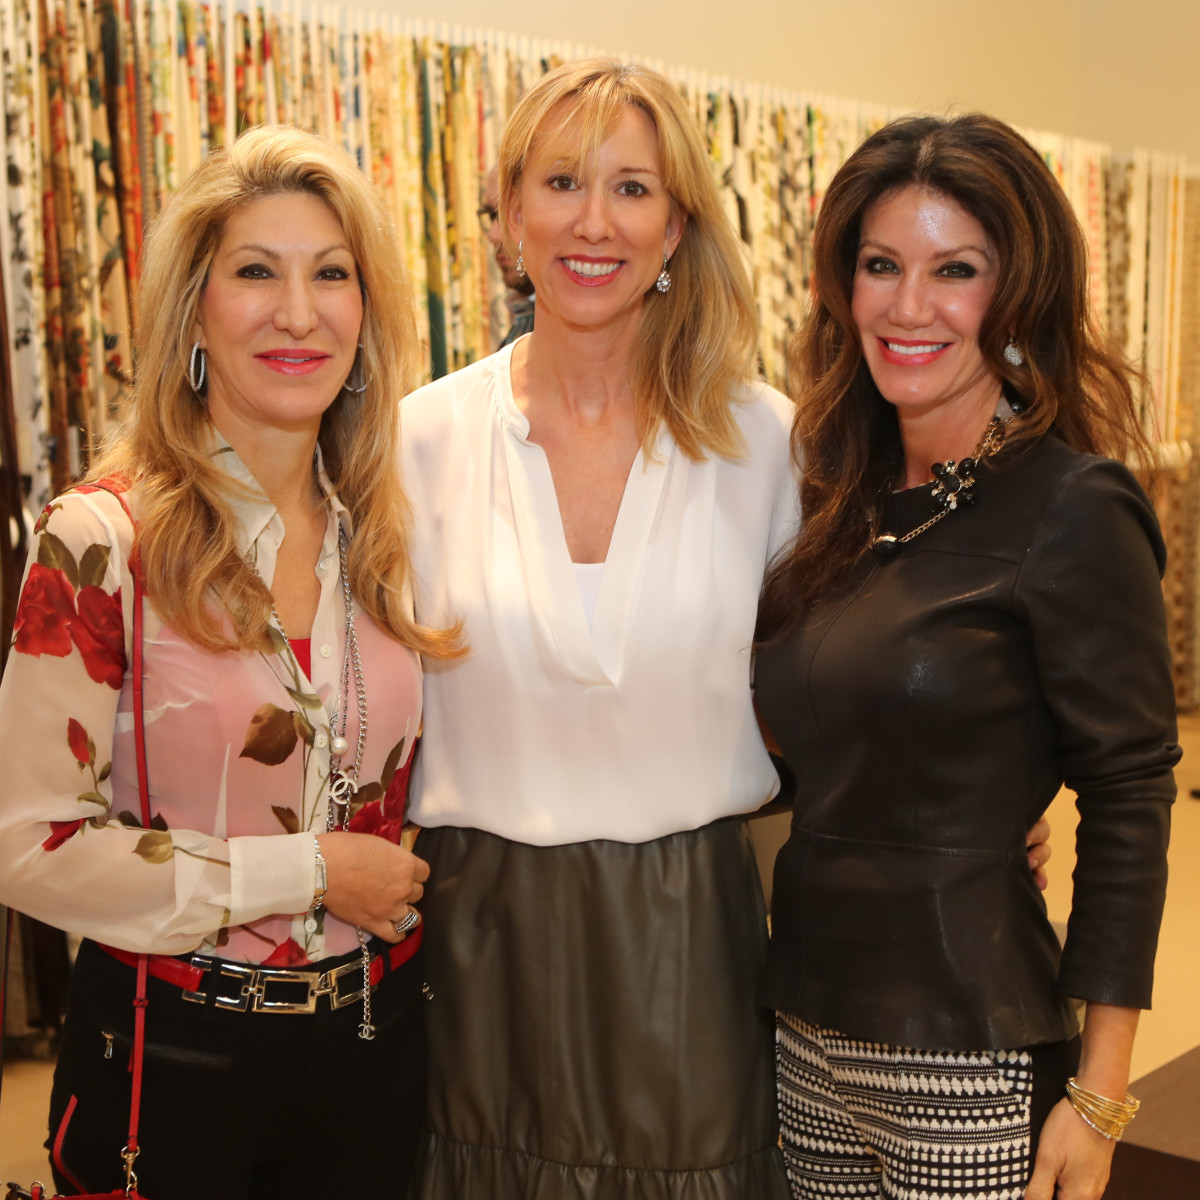 News, Shelby, Decorative Center Houston Fall Market, Nov. 2015, Rosemary Roth, Caroline Finklestein, Paula Fryh